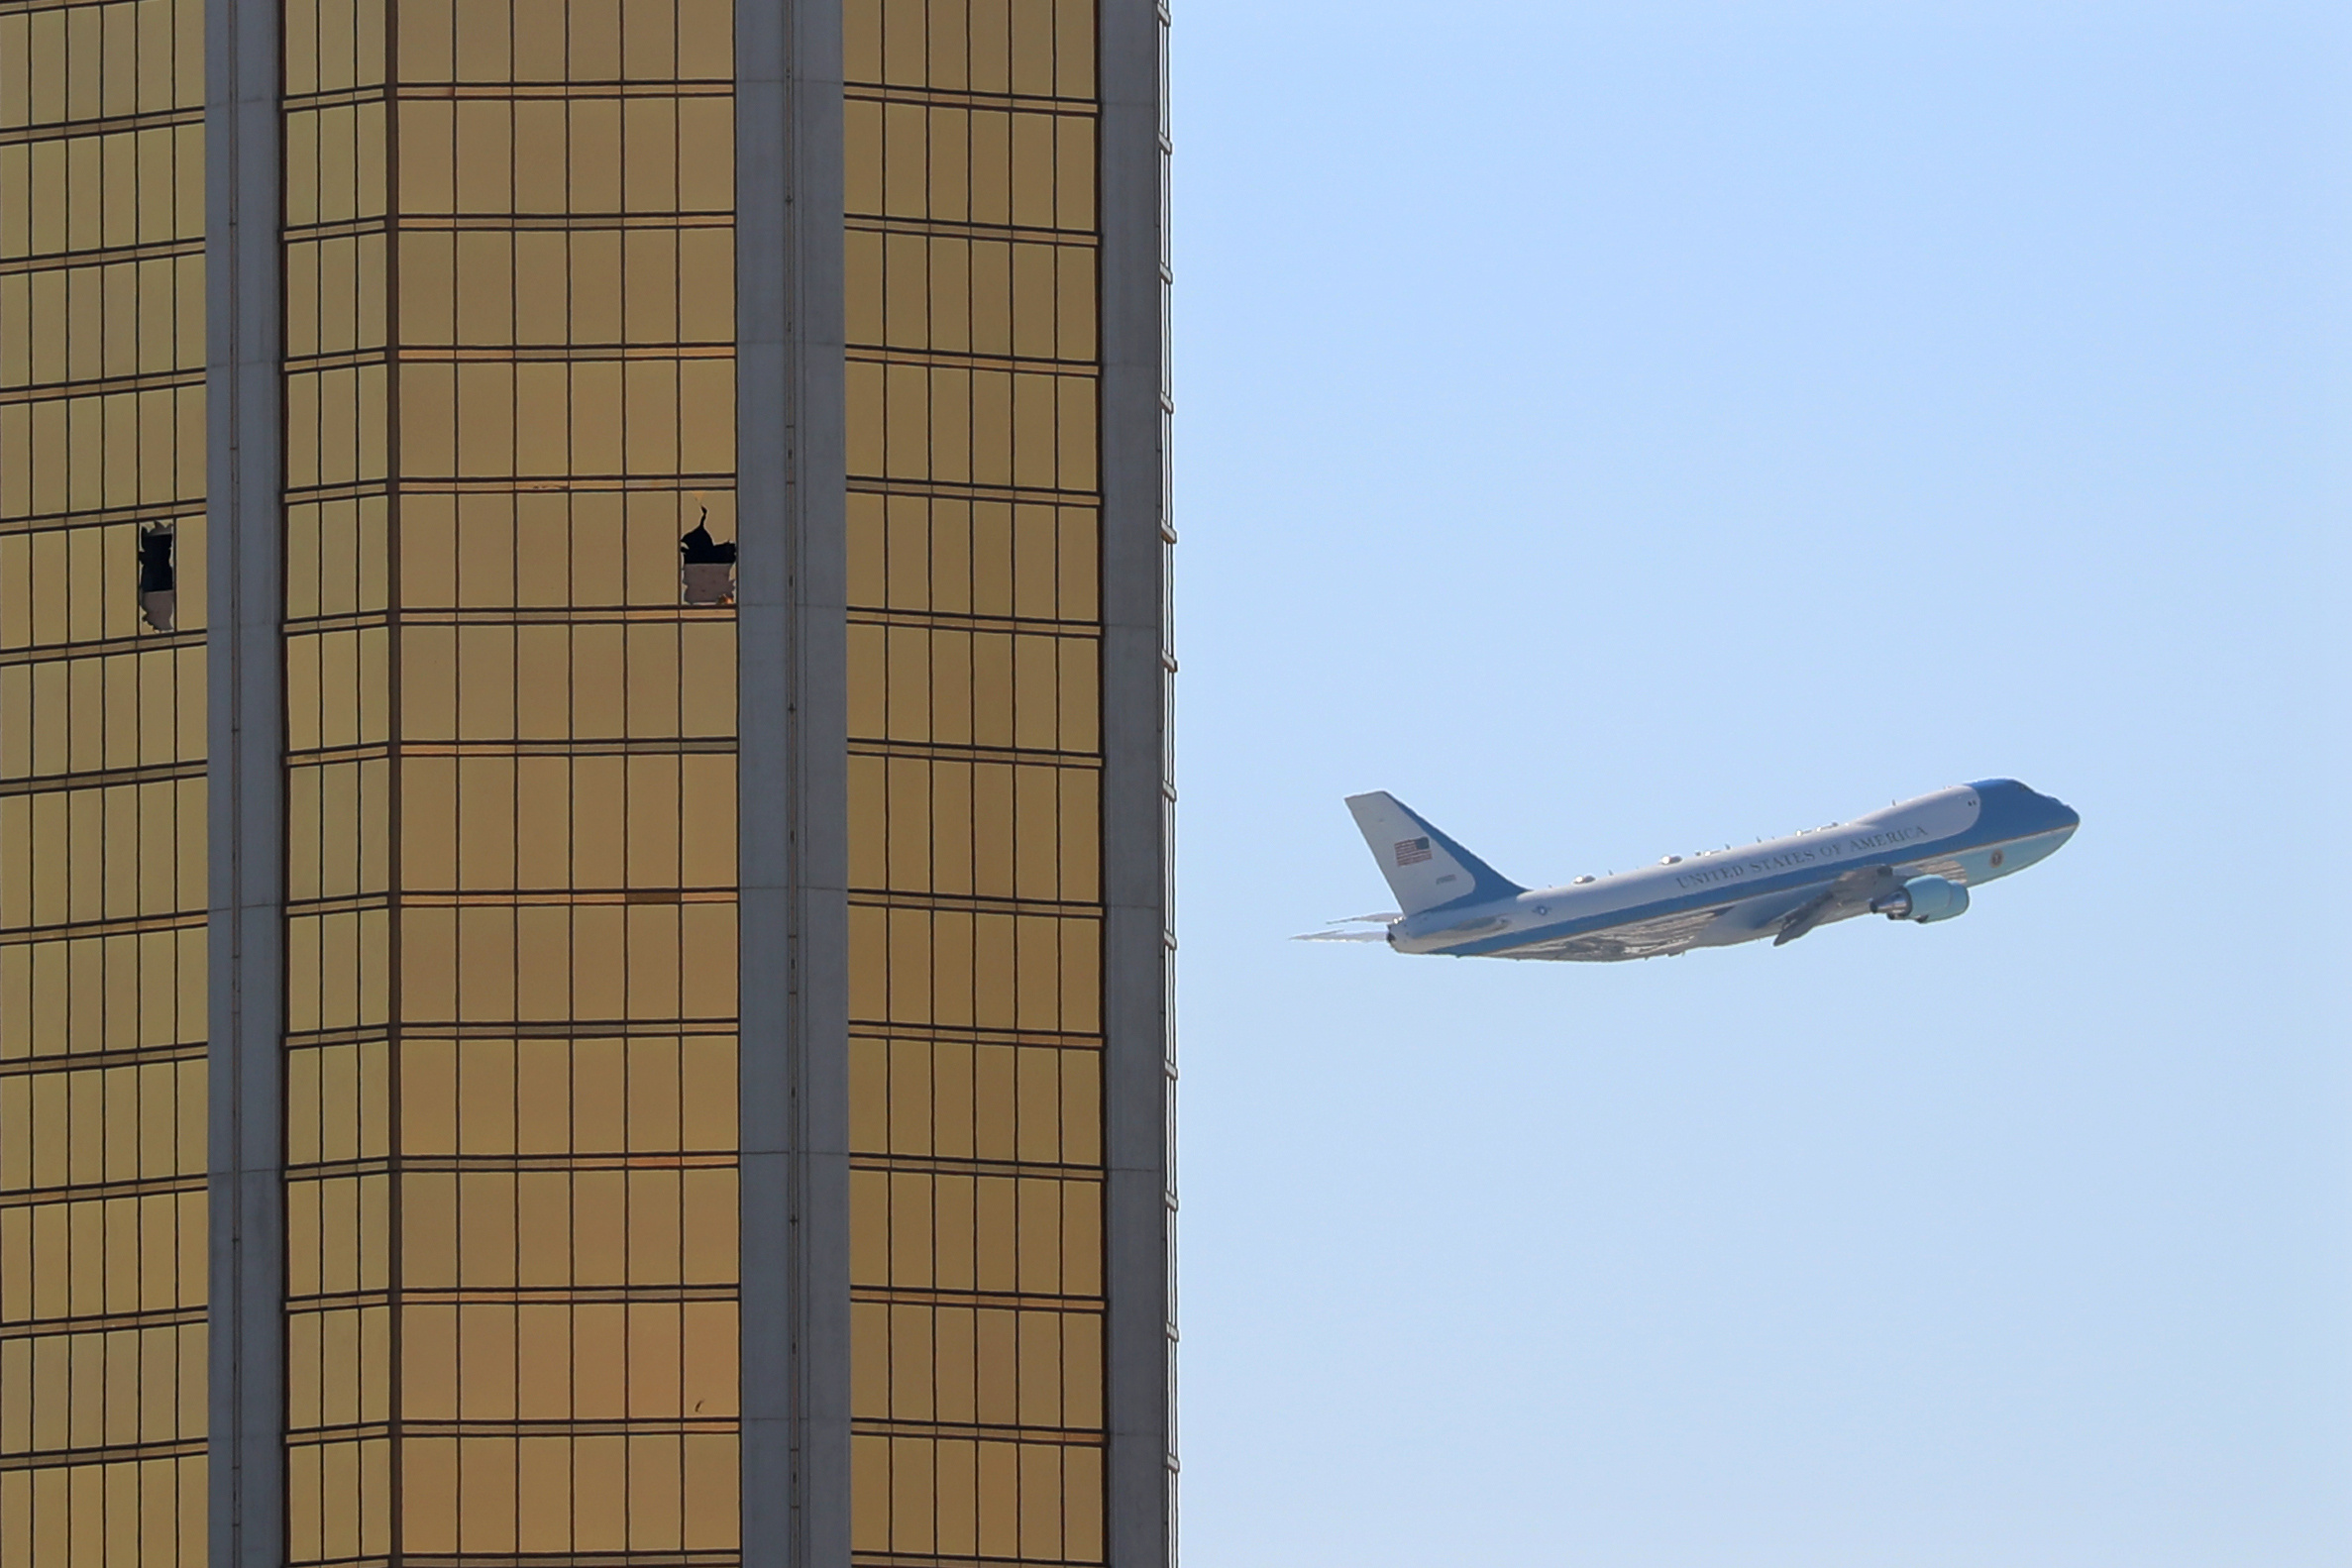 Photo Captures Striking Moment Air Force One Flew by the Broken Windows of the Mandalay Bay Hotel